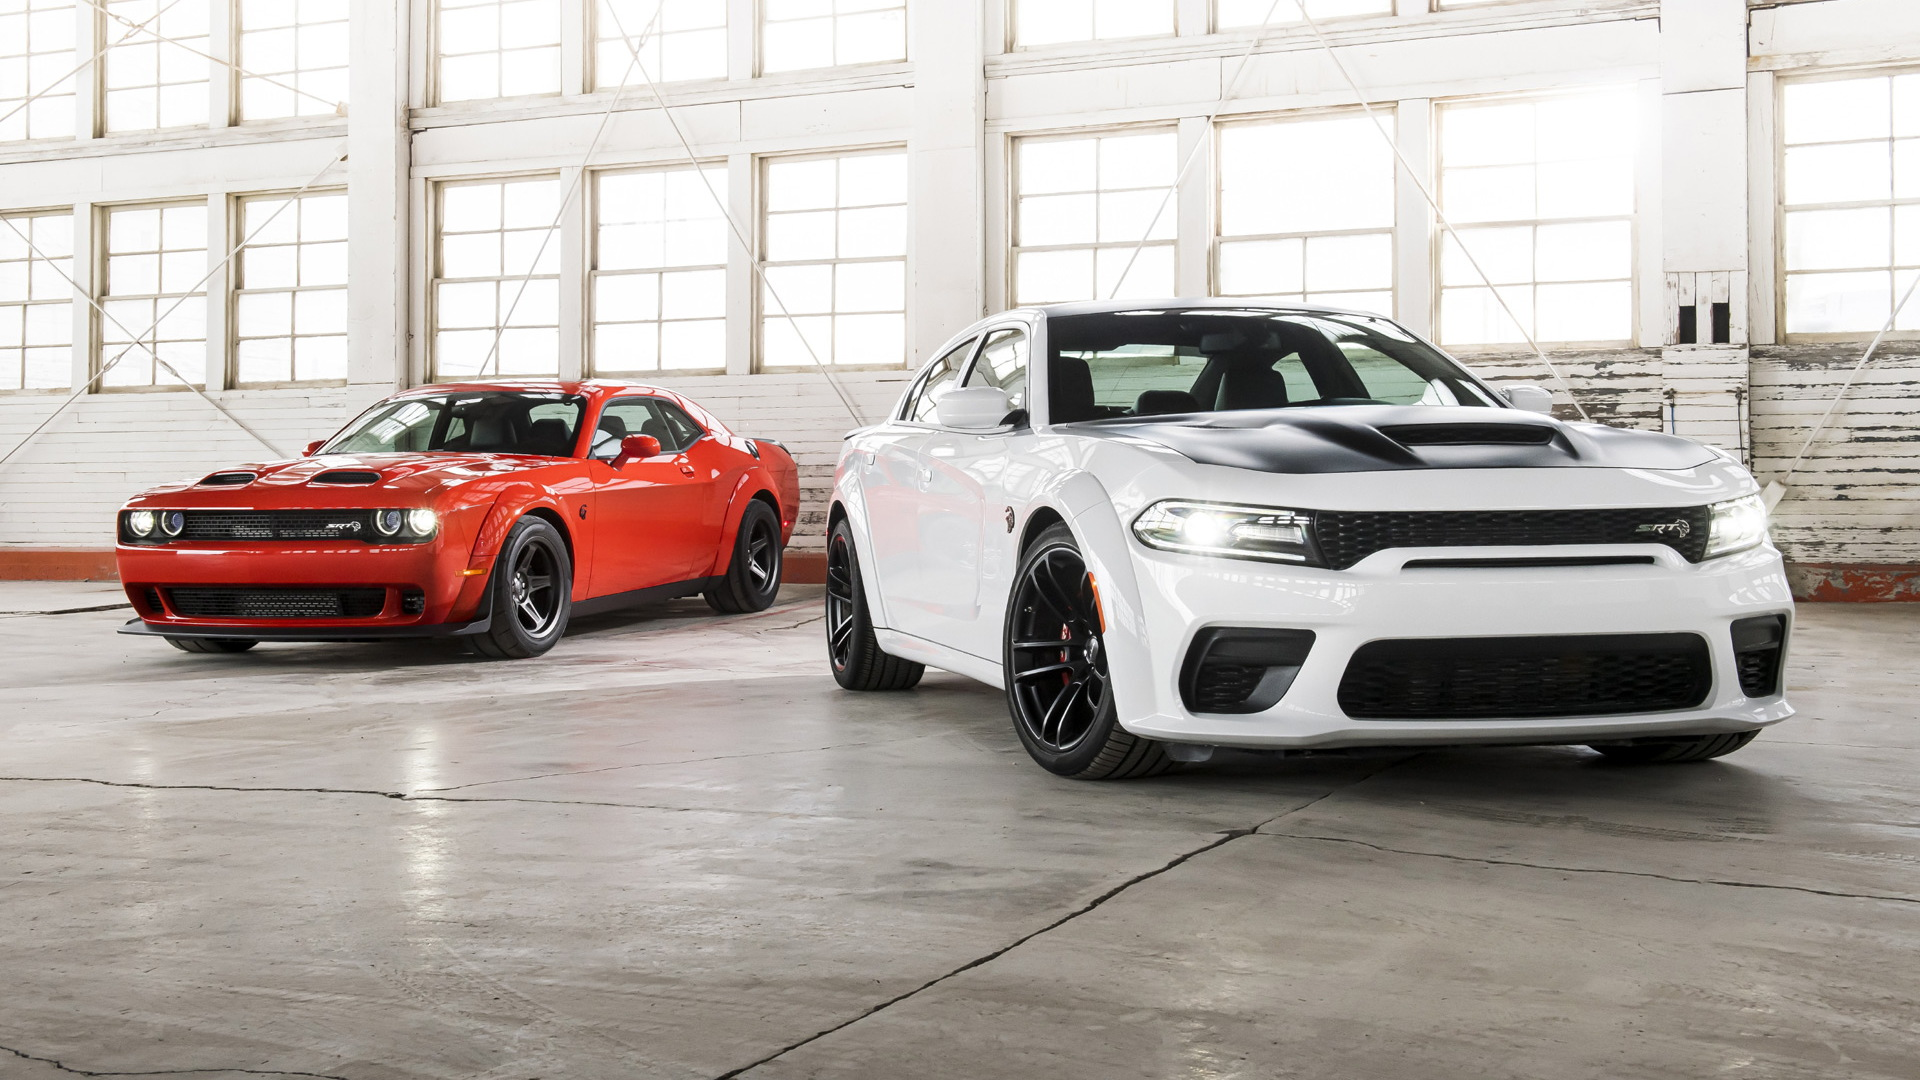 2020 Dodge Challenger SRT Super Stock and 2021 Dodge Charger SRT Hellcat